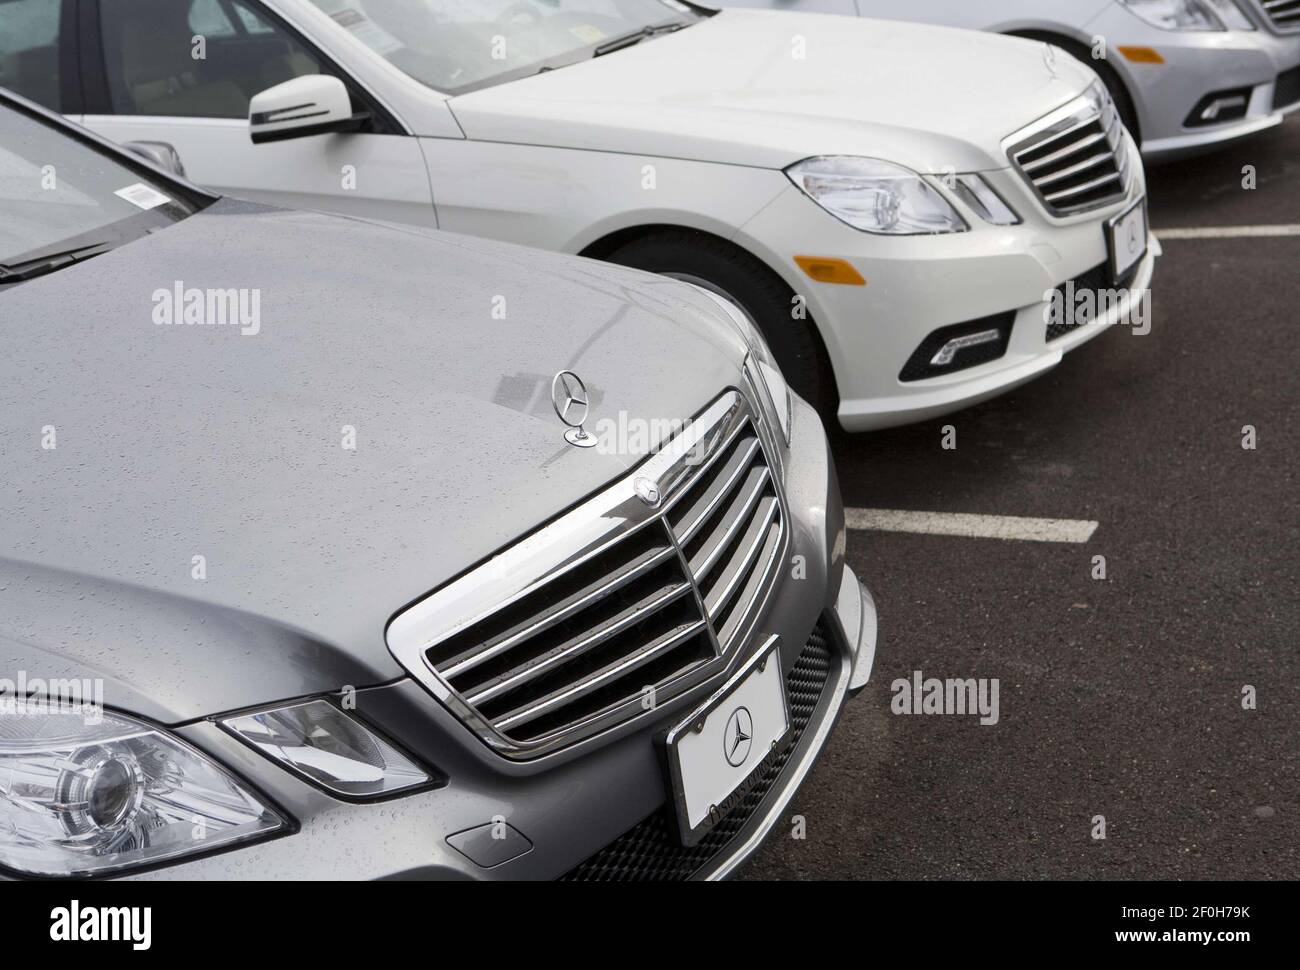 Our car experts choose every product we feature. 25 December 2010 Mclean Virginia A Mercedes Benz Car Dealership In Northern Virginia Photo Credit Kristoffer Tripplaar Sipa Press Mercedesdealer 006 1012262231 Stock Photo Alamy